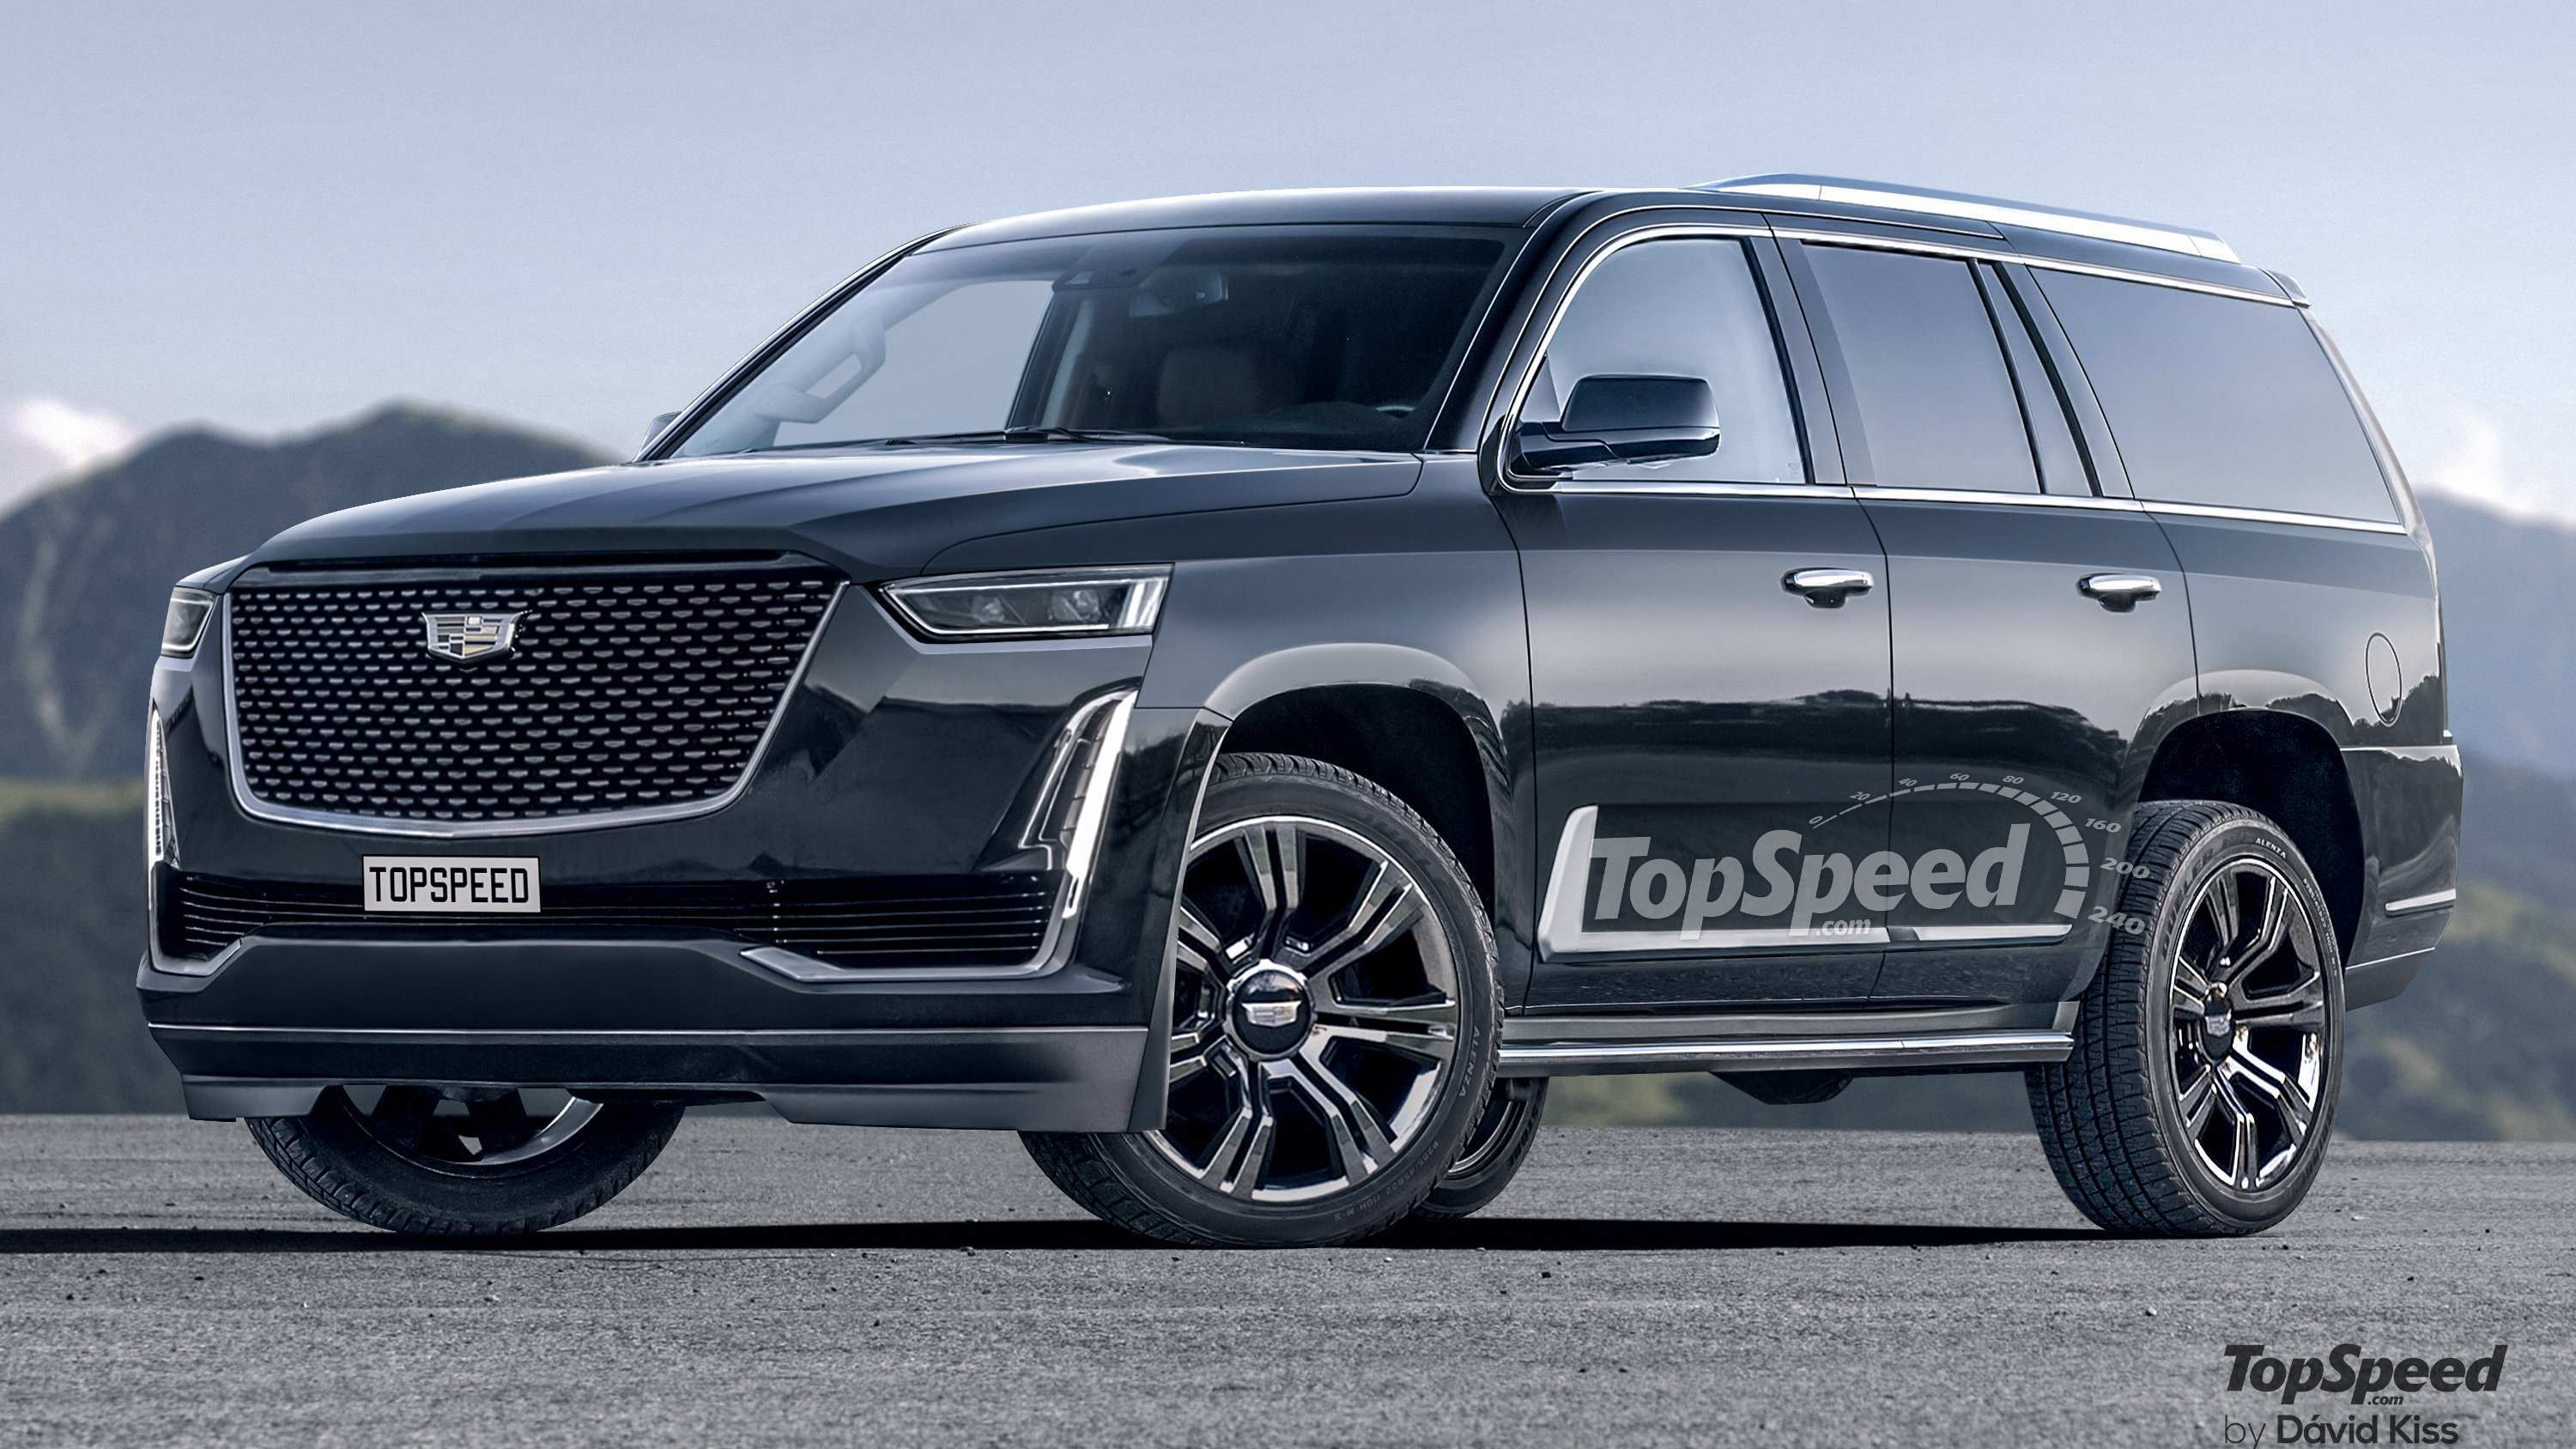 82 Best Review 2020 Cadillac Escalade Latest News Ratings with 2020 Cadillac Escalade Latest News